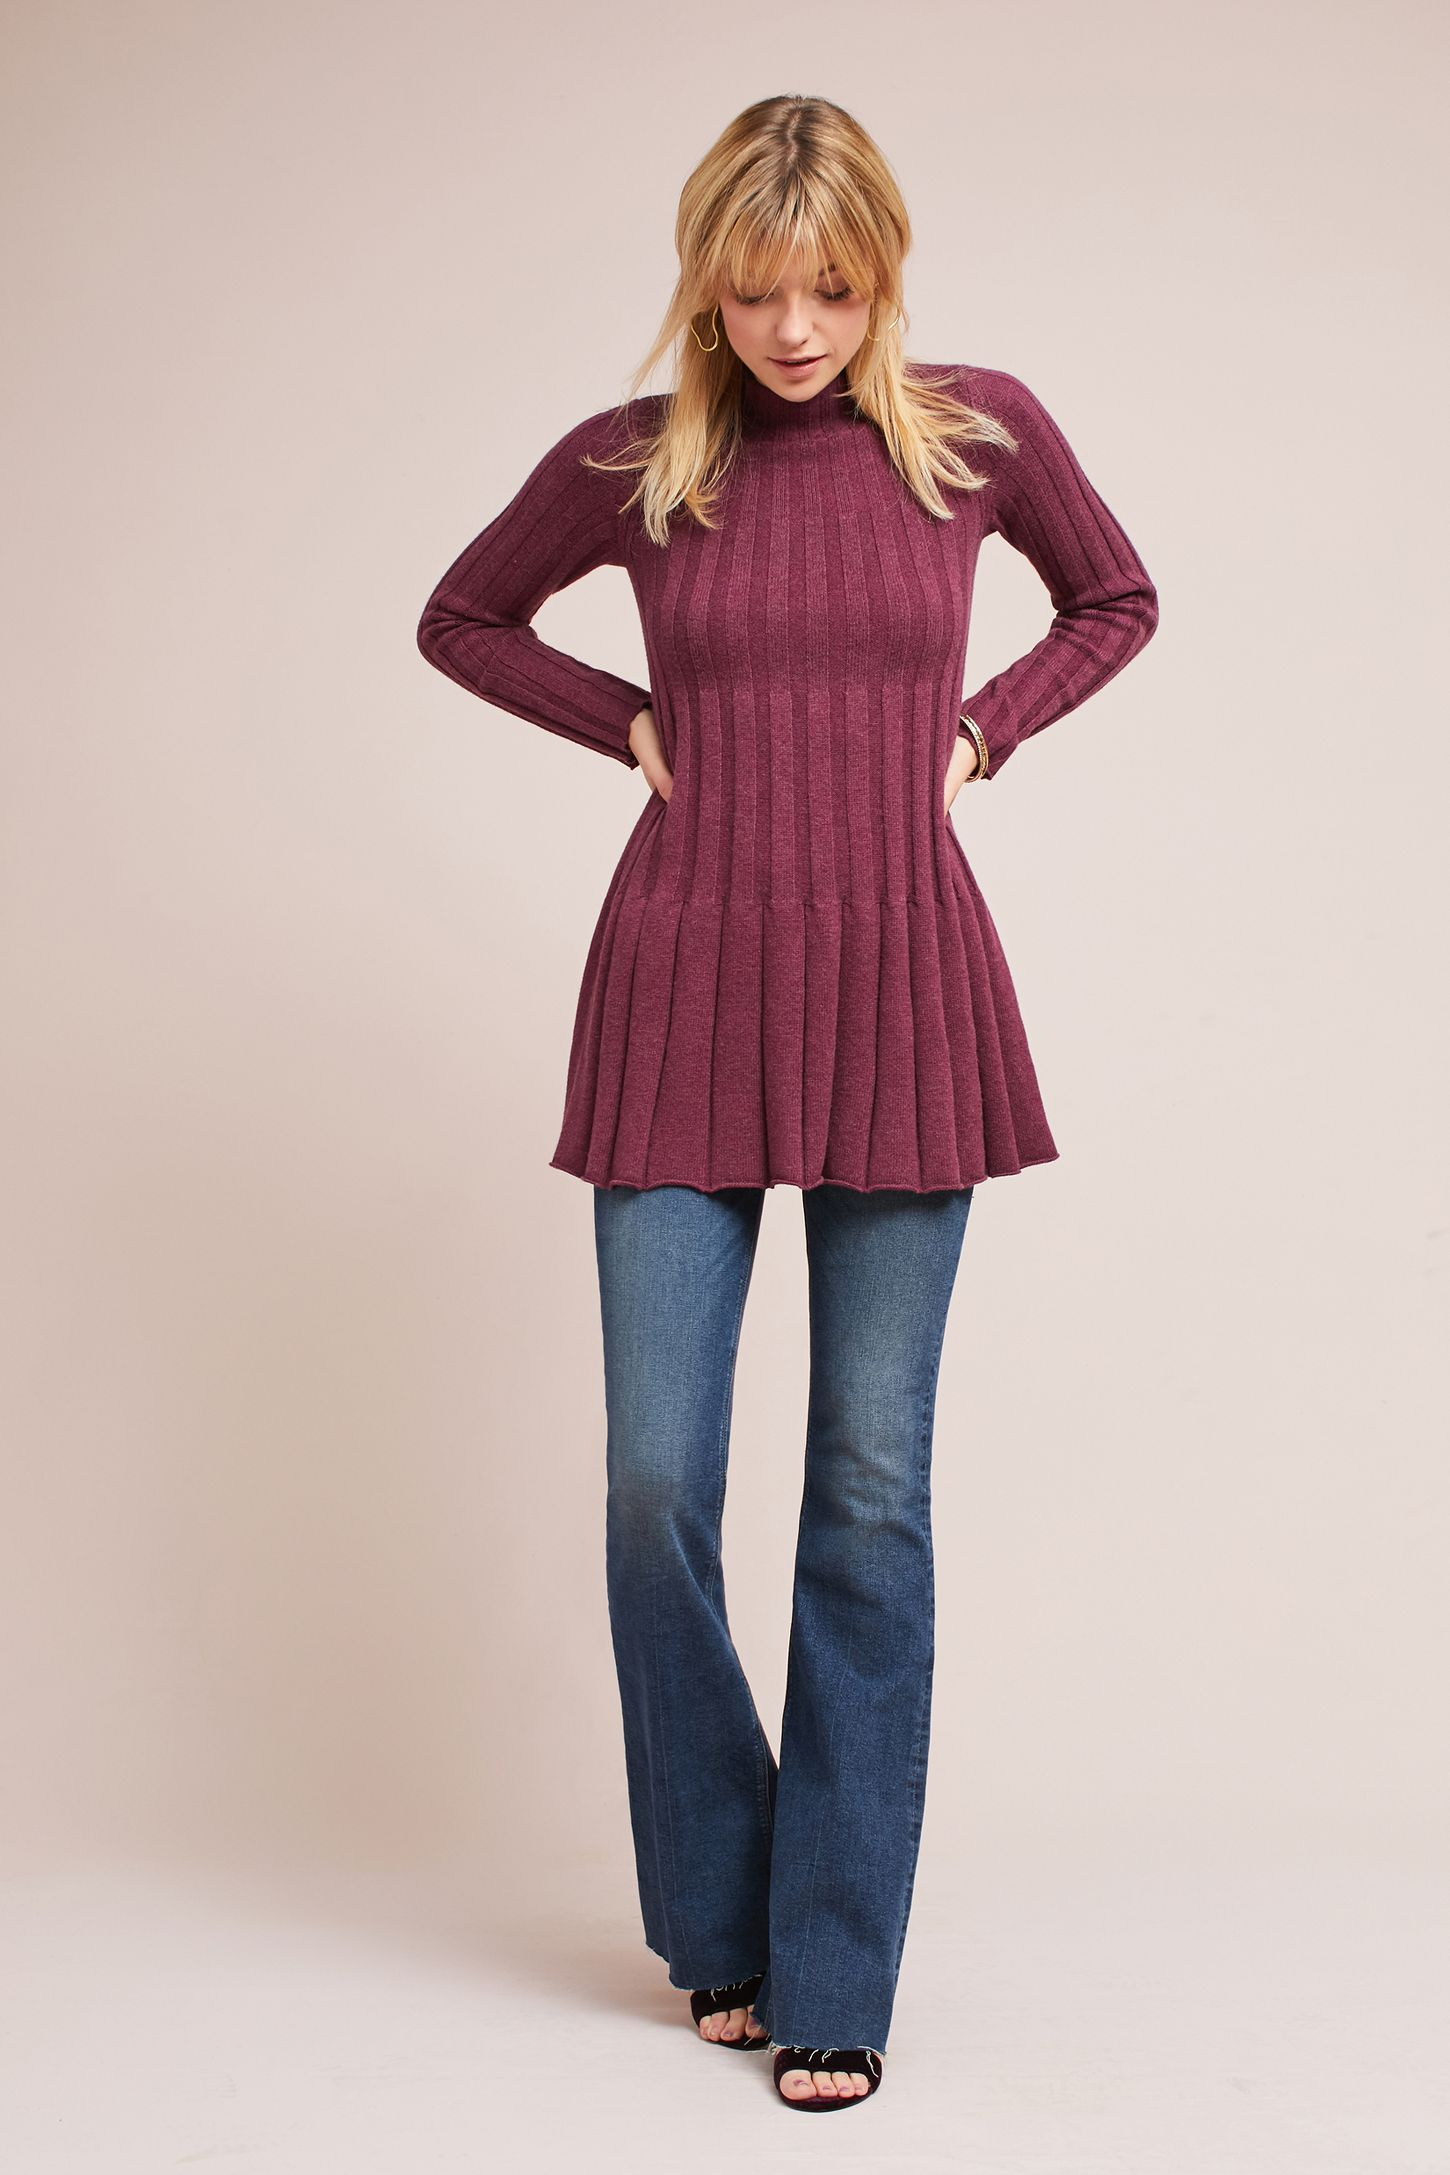 Purple - Sweaters For Women & Oversized Sweaters | Anthropologie